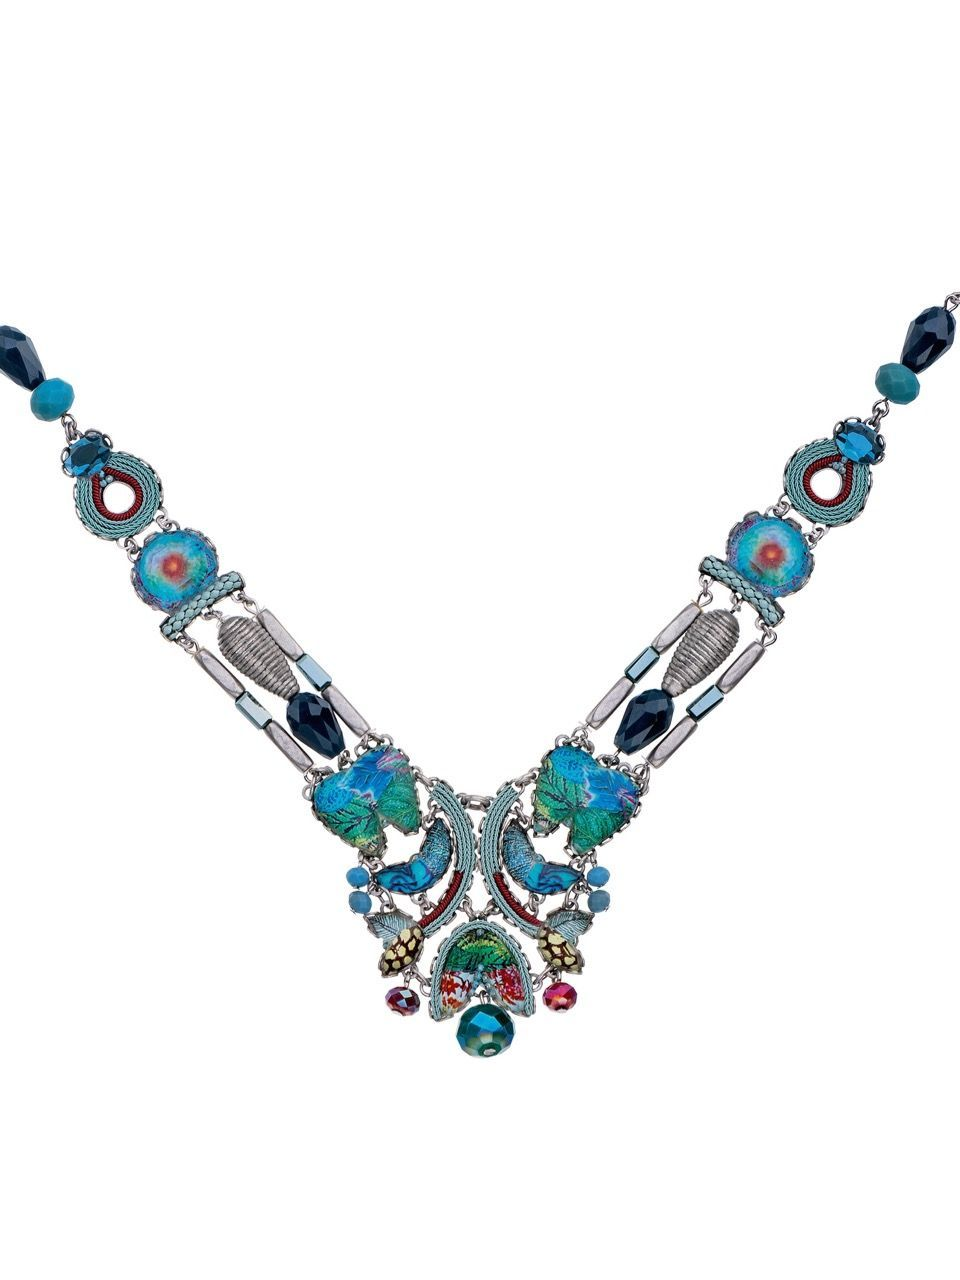 Ayala Bar Necklace R3007 Radiance Collection Astral Light Winter 2019 R3007 Ayala Bar Necklace Radiance Astr In 2020 Bar Necklace Bar Earrings Celebrity Jewelry